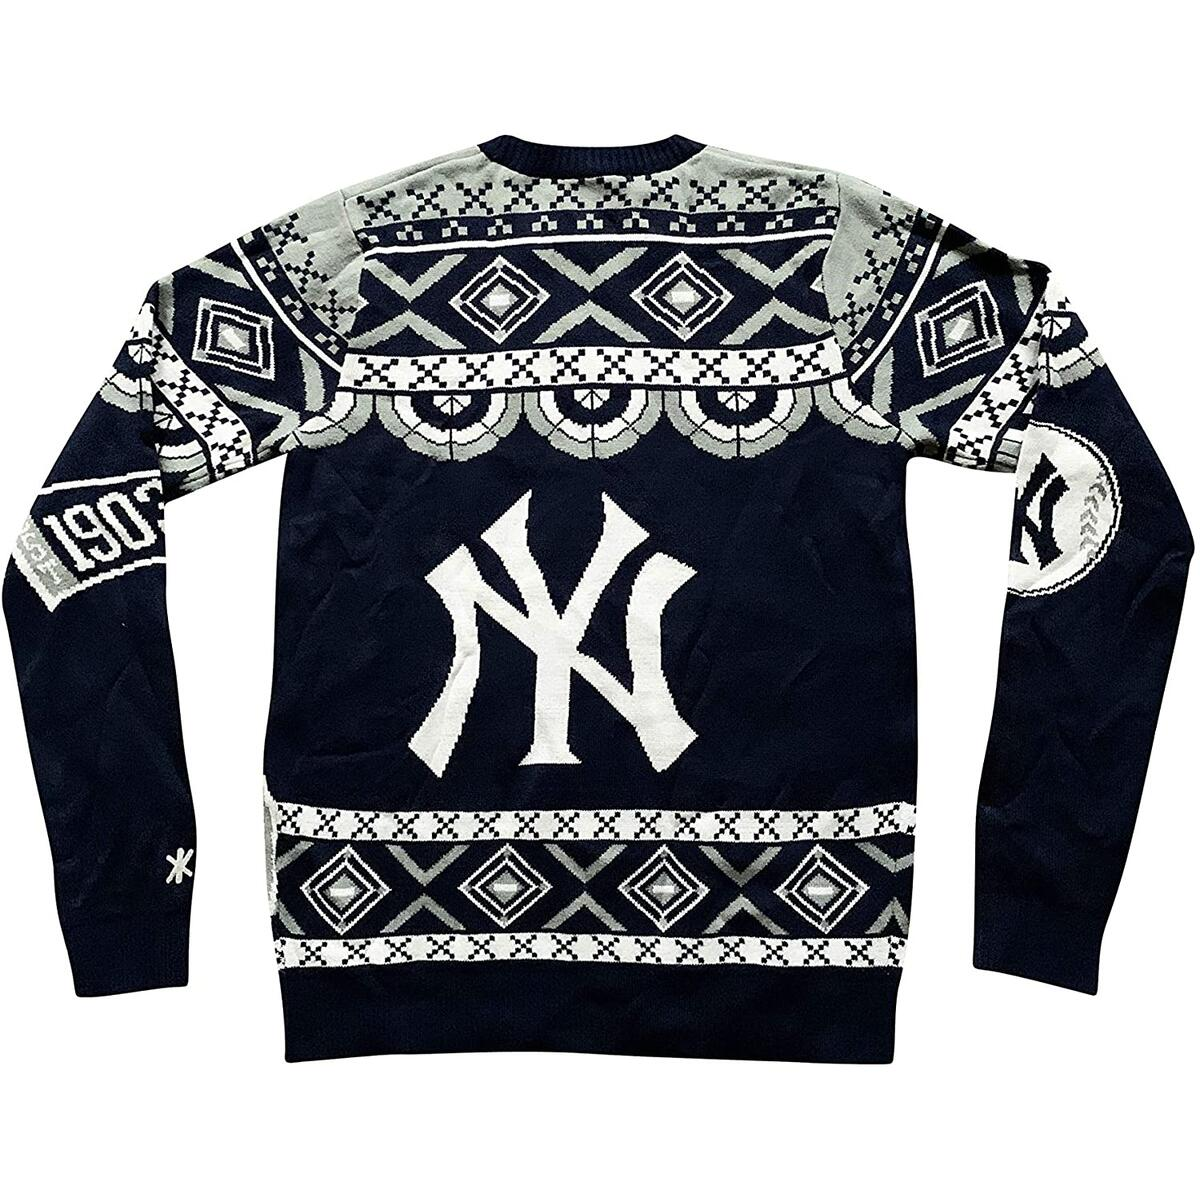 Genuine Merchandise Men's Sweaters New York Yankees Klew MLB Thematic Ugly Sweater (Small, Navy/Gray/White)